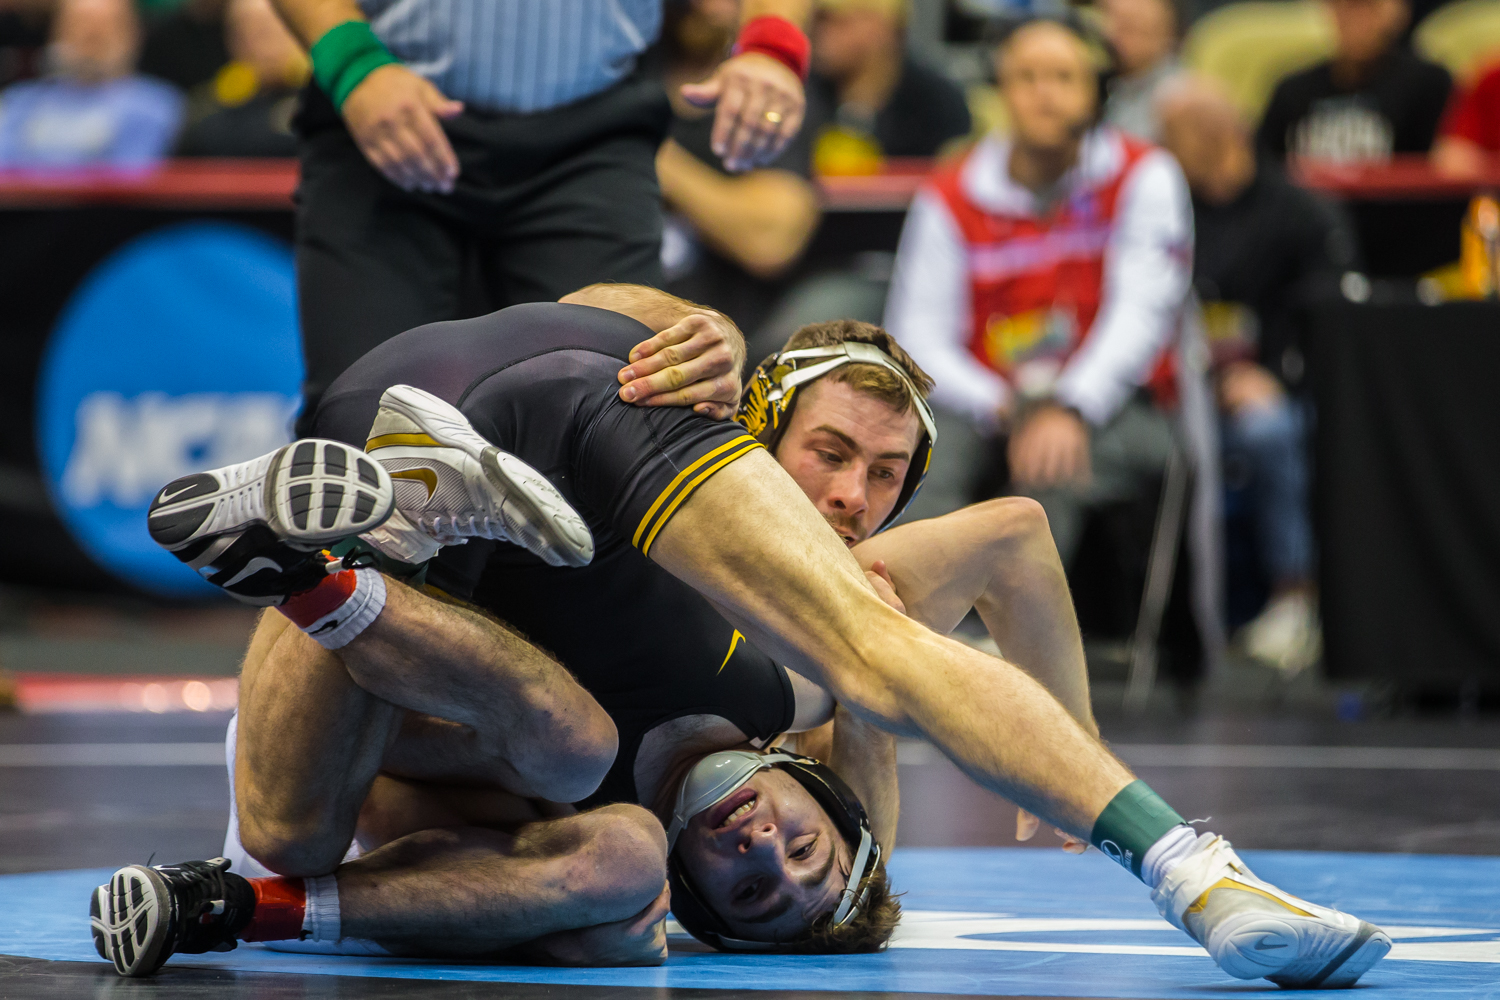 Iowa%E2%80%99s+133-pound+Austin+DeSanto+wrestles+Missouri%E2%80%99s+John+Erneste+during+the+fifth+session+of+the+2019+NCAA+D1+Wrestling+Championships+at+the+PPG+Paints+Arena+in+Pittsburgh%2C+PA+on+Saturday%2C+March+23%2C+2019.+Desanto+won+by+decision%2C+11-6%2C+and+earned+fifth+in+the+weight+class.